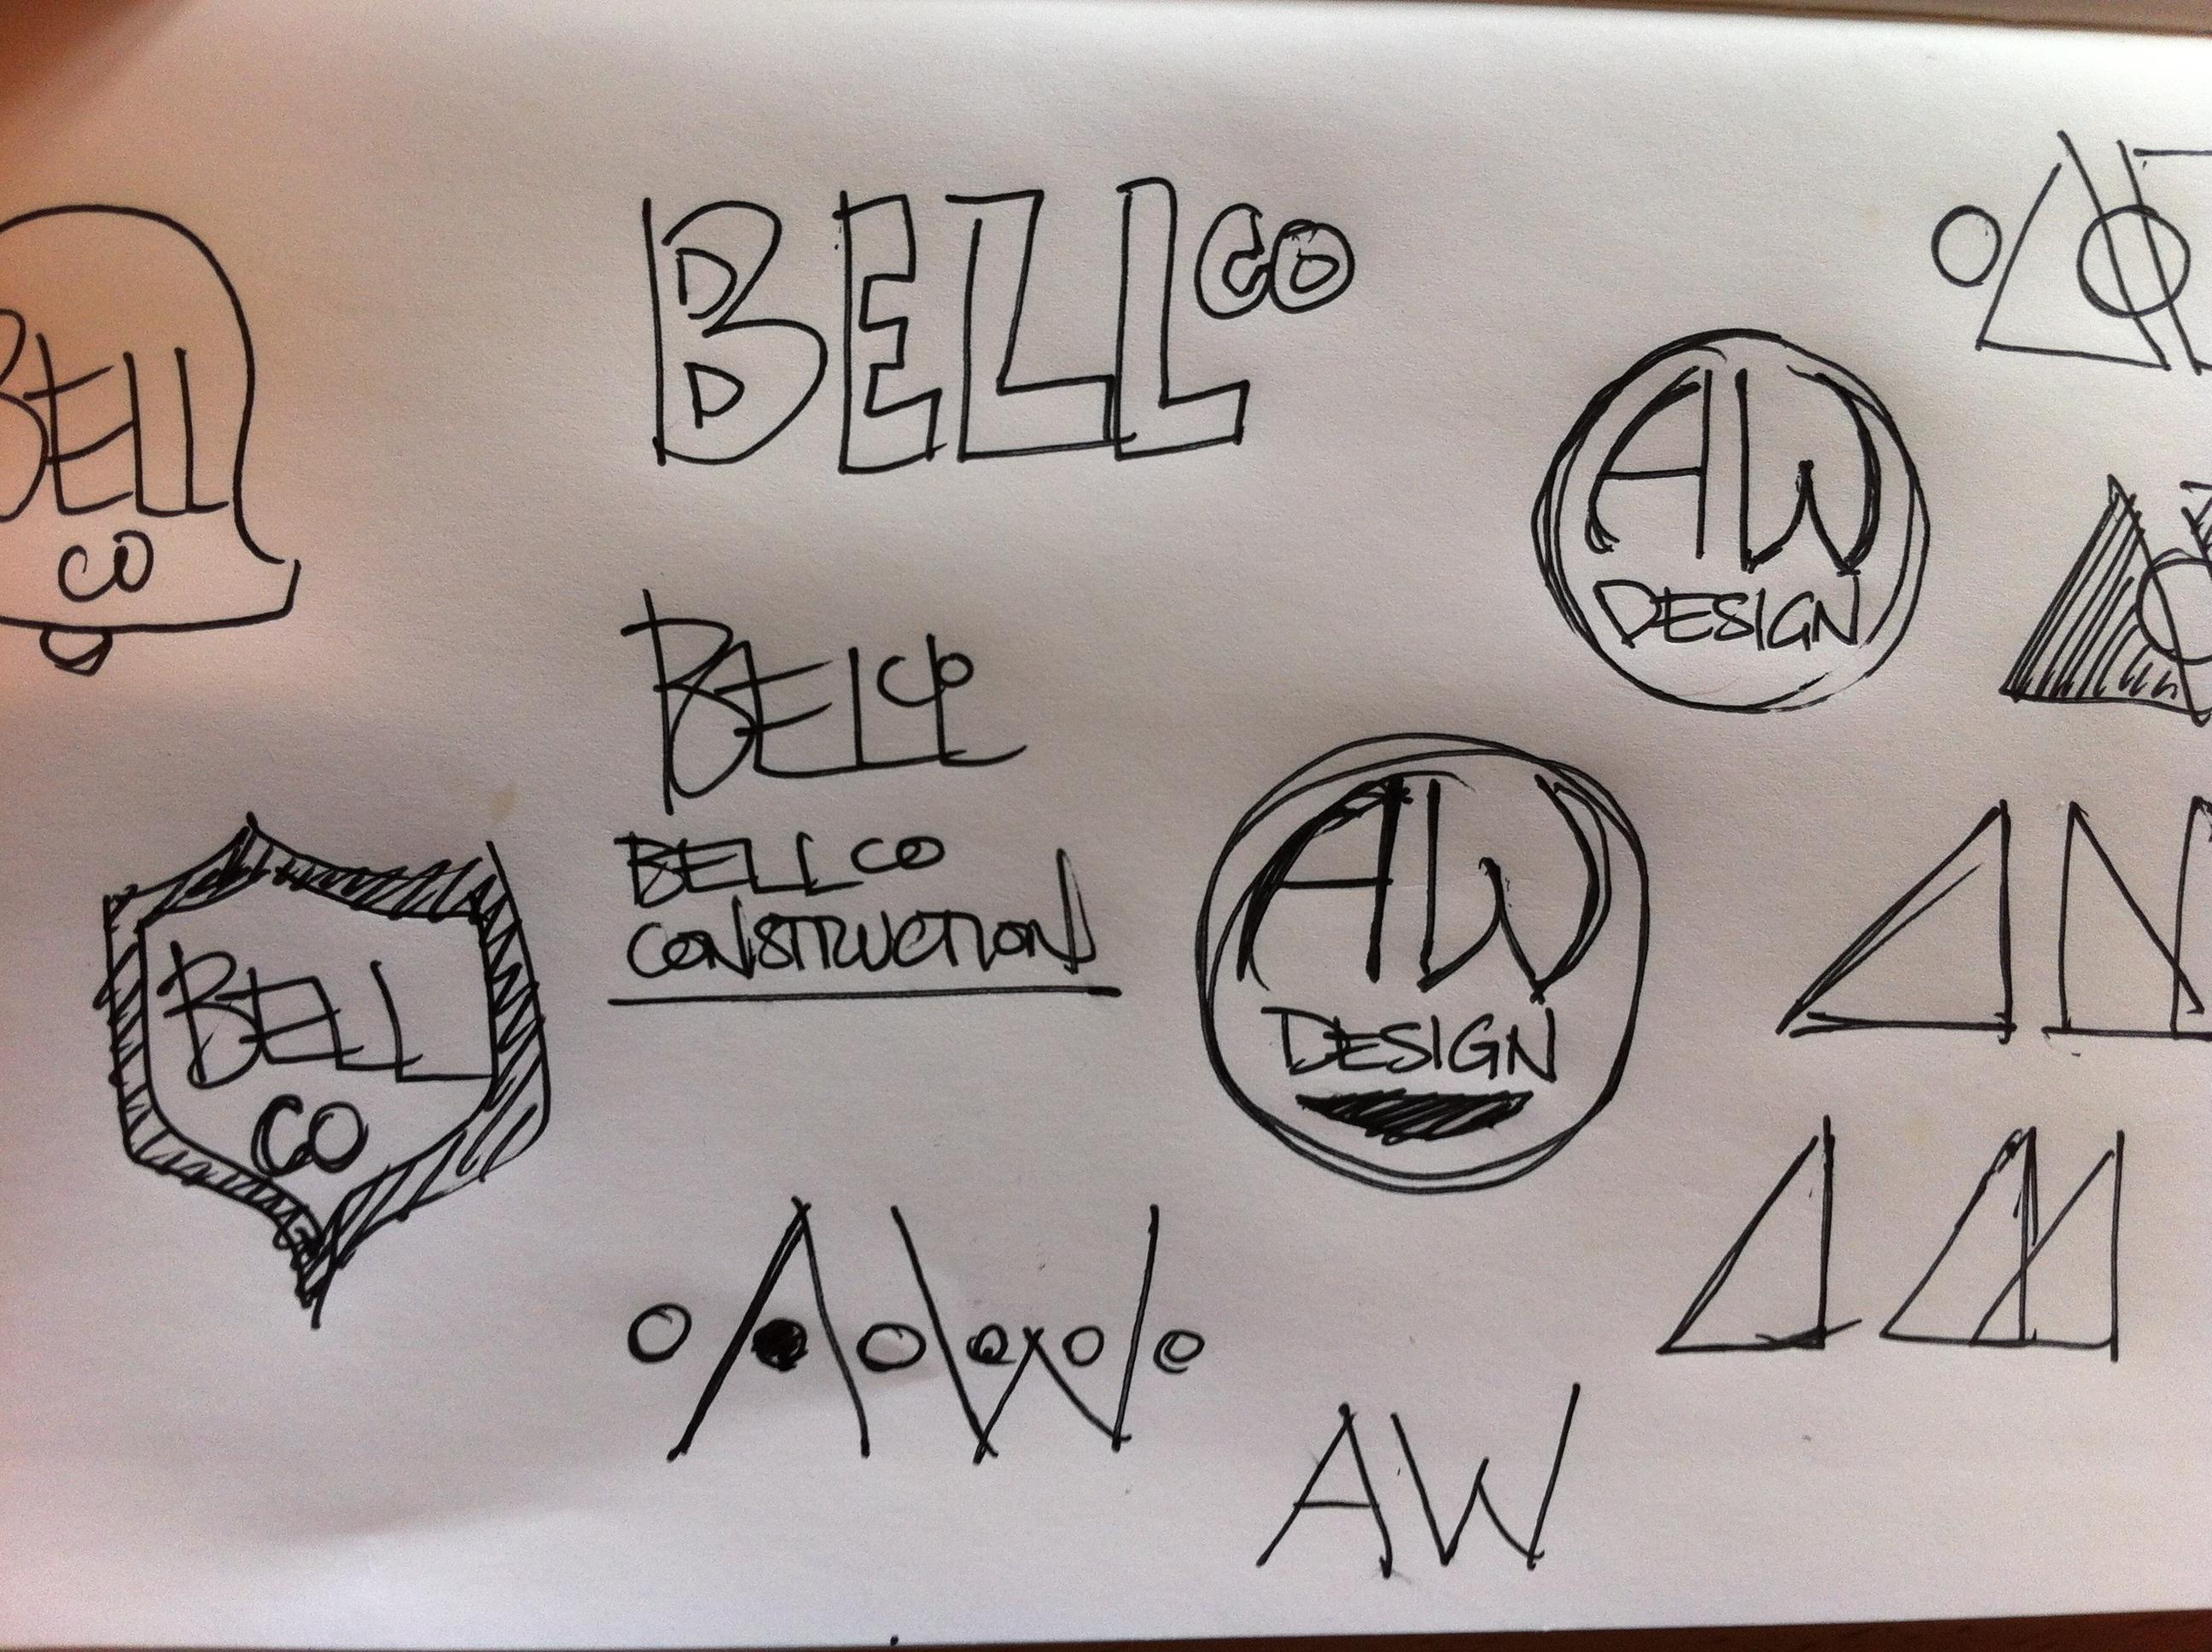 BelleCo / Self Logo - image 8 - student project